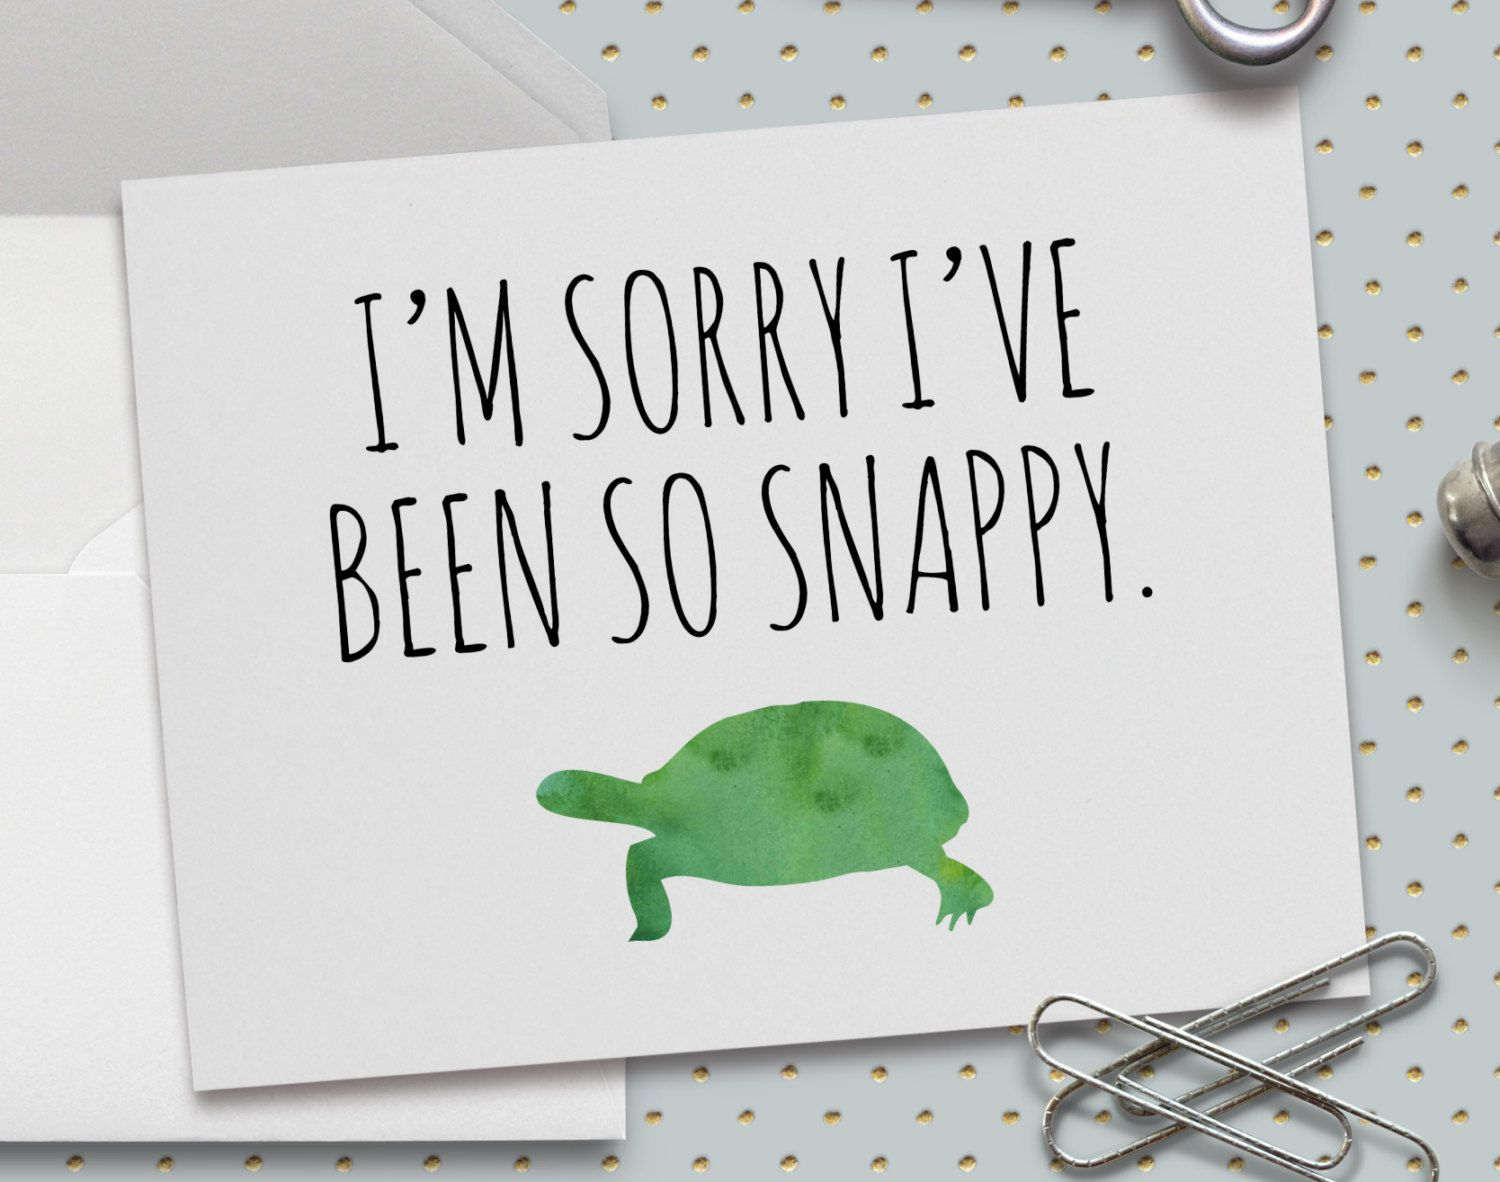 Cute apology card im sorry ive been so snappy snapping turtle 55 cute apology card im sorry ive been so snappy snapping turtle 55 kristyandbryce Gallery